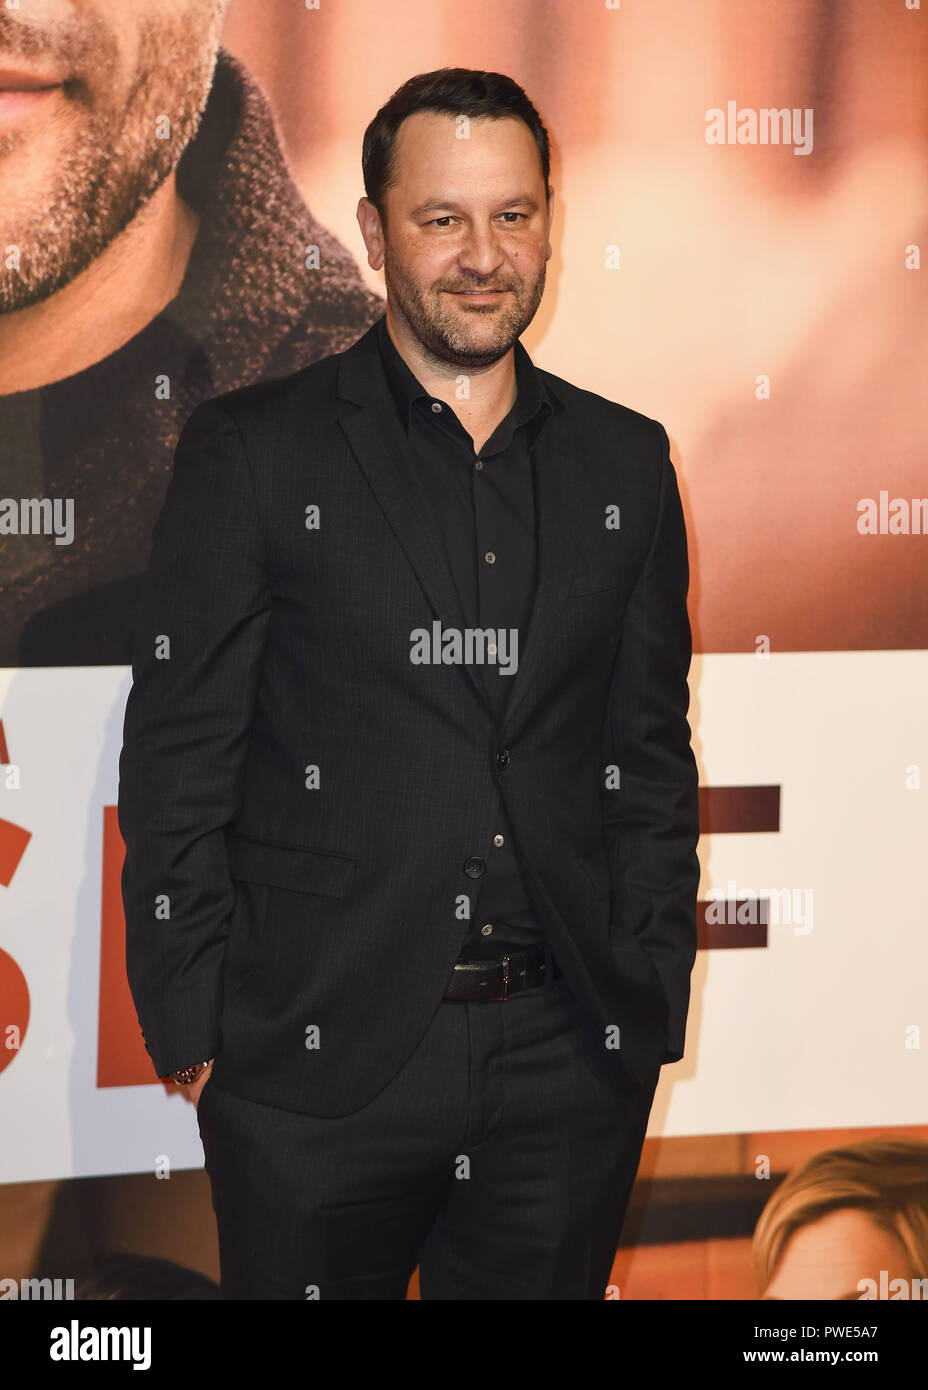 London, UK. 15th Oct, 2018. Dan Fogelman attends the European Premiere of 'Life Itself' & Royal Bank of Canada Gala during the 62nd BFI London Film Festival. Credit: Gary Mitchell/SOPA Images/ZUMA Wire/Alamy Live News Stock Photo